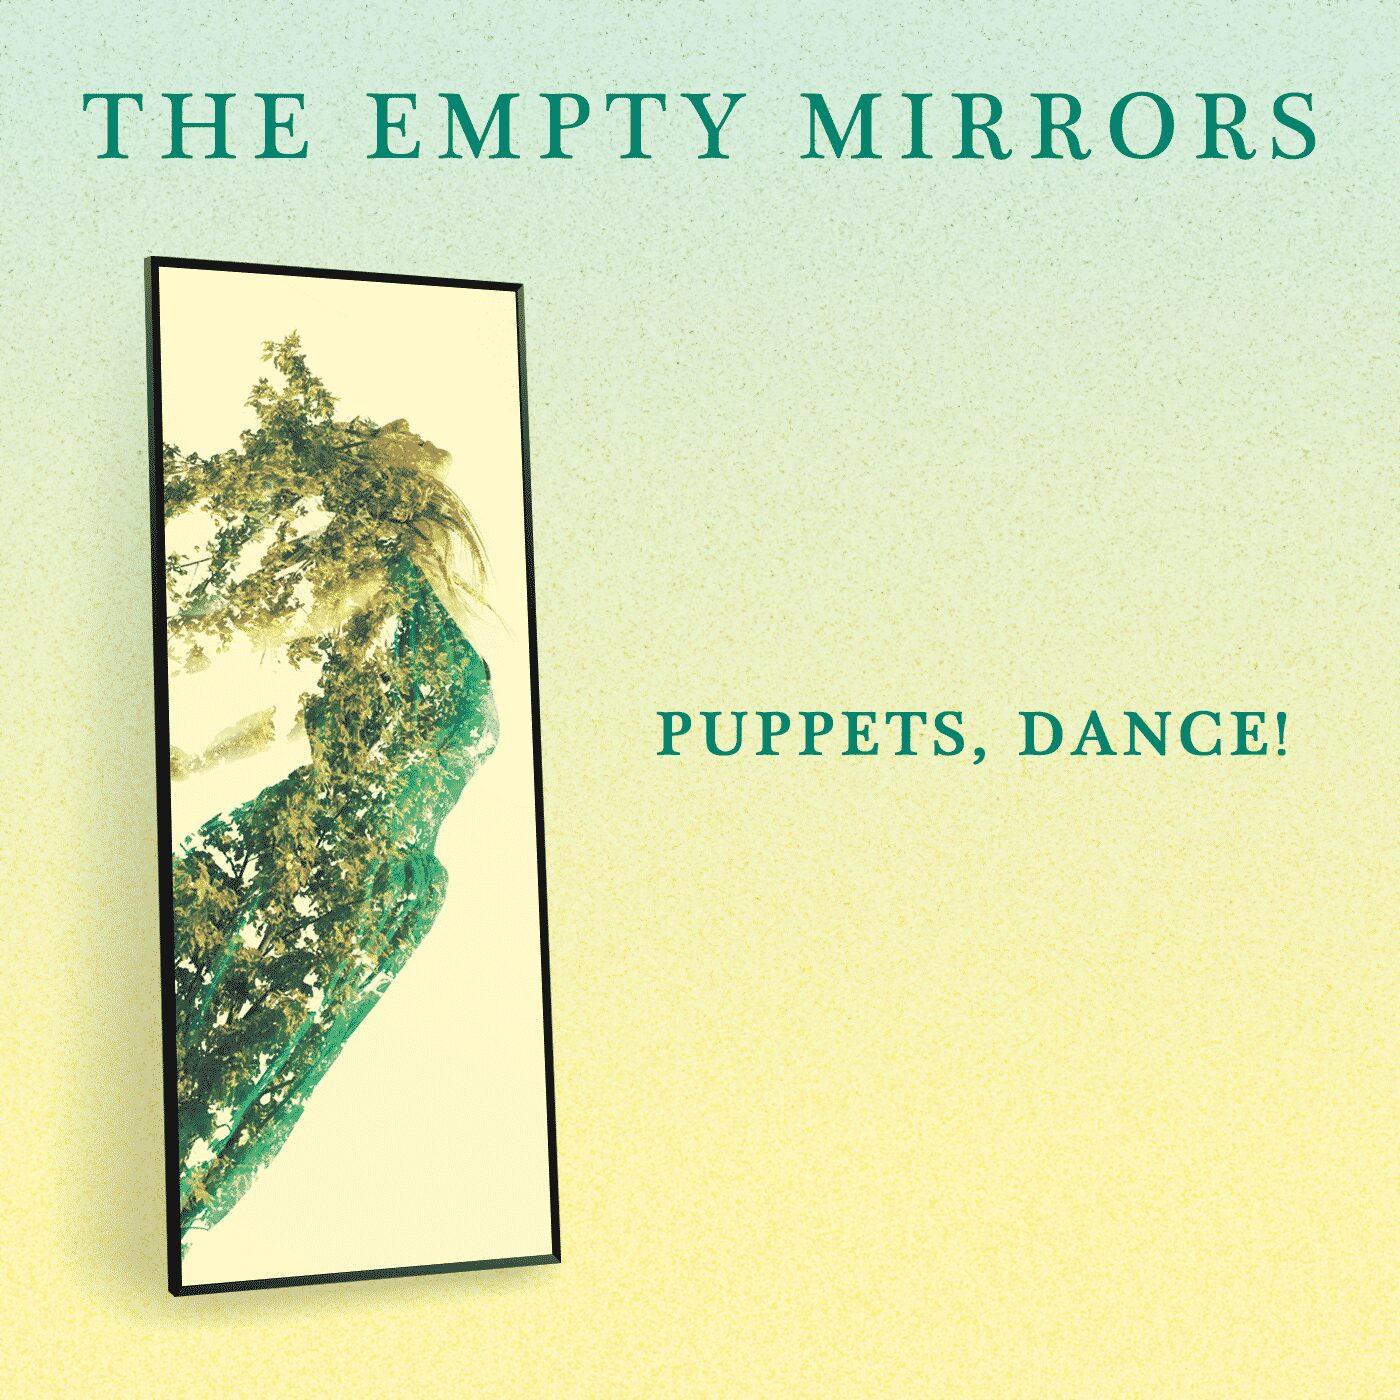 the empty mirrors Anglo-Finnish song project alt pop